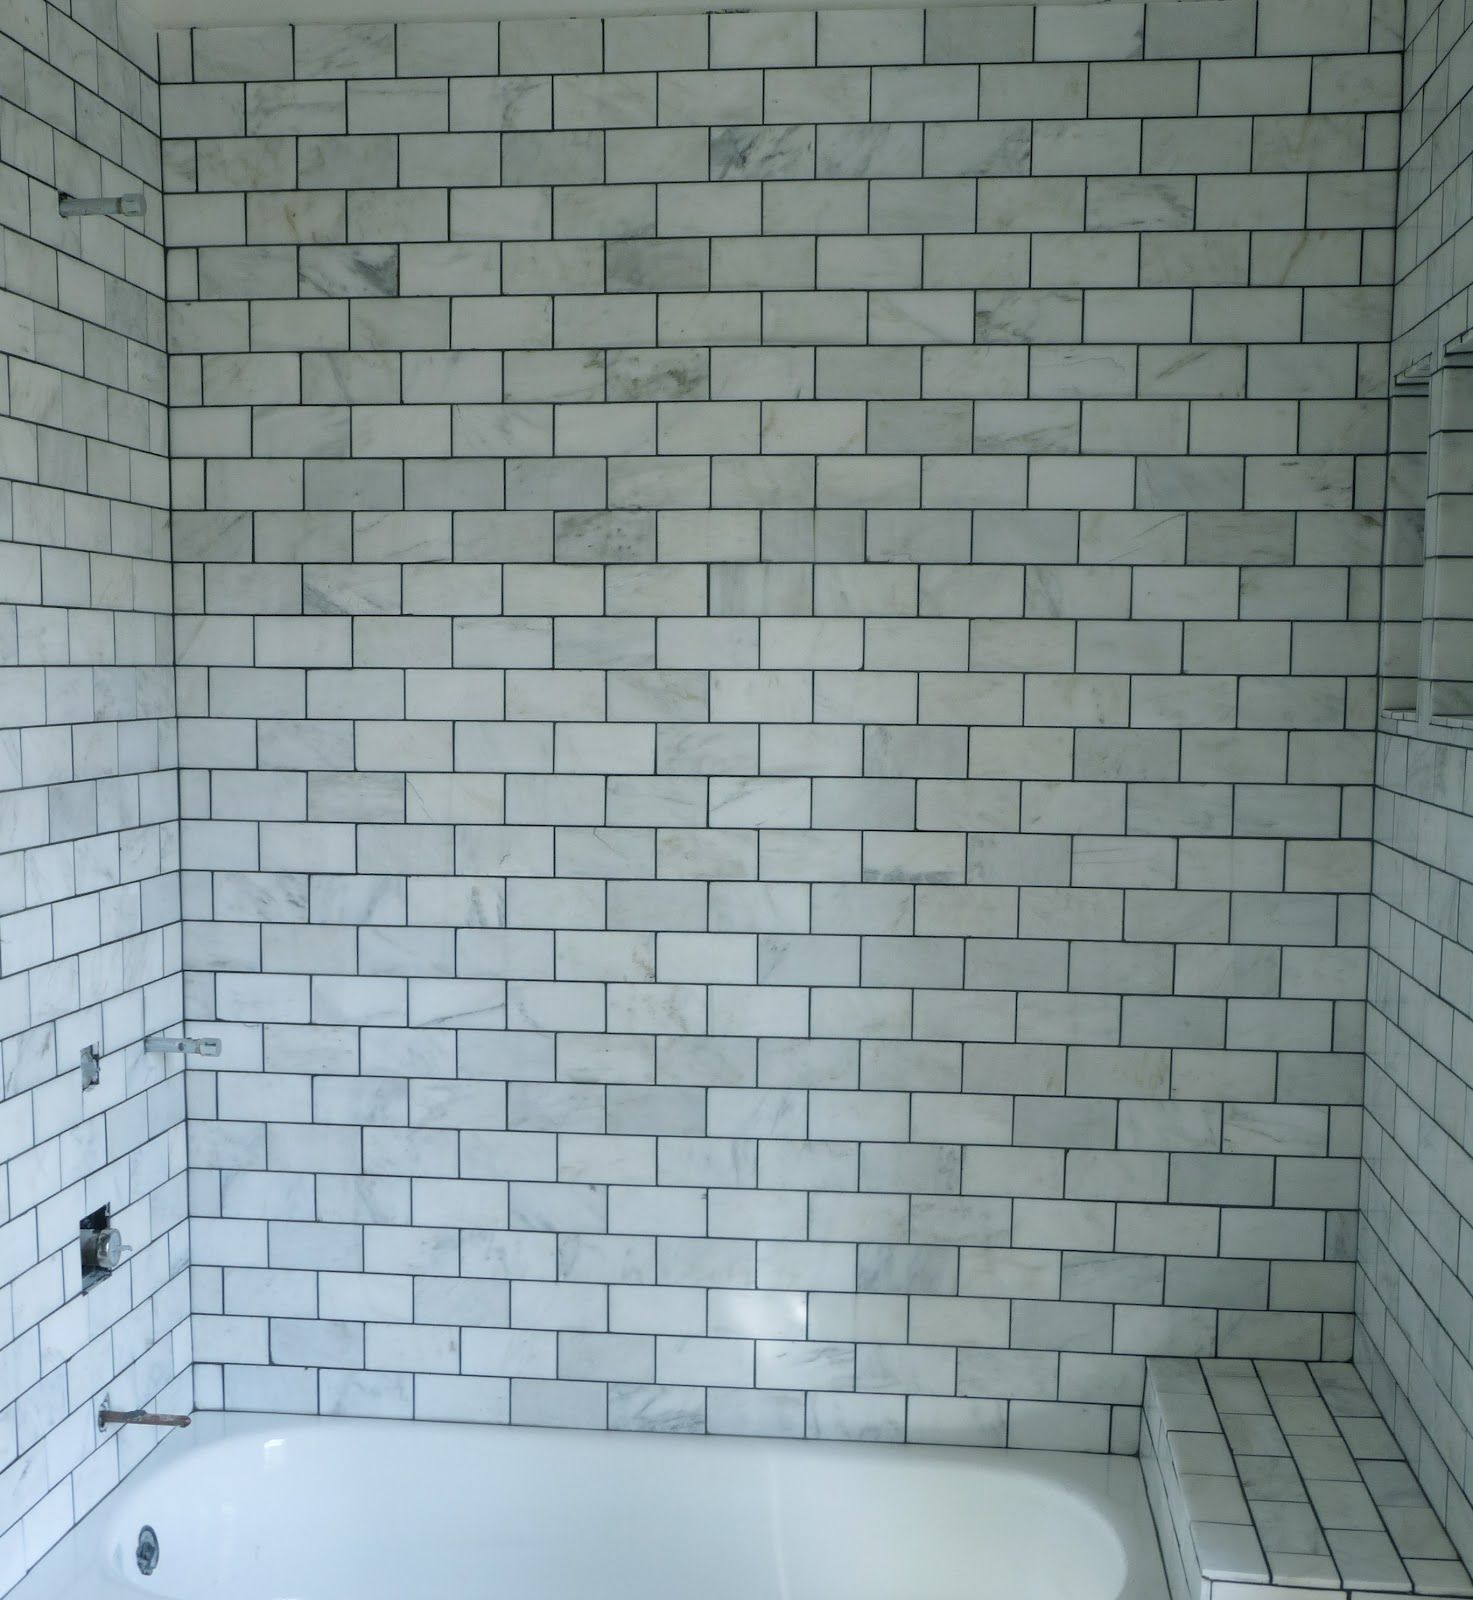 Marble tile/black grout | Bungalow Home: Black & White | ♥Home ...